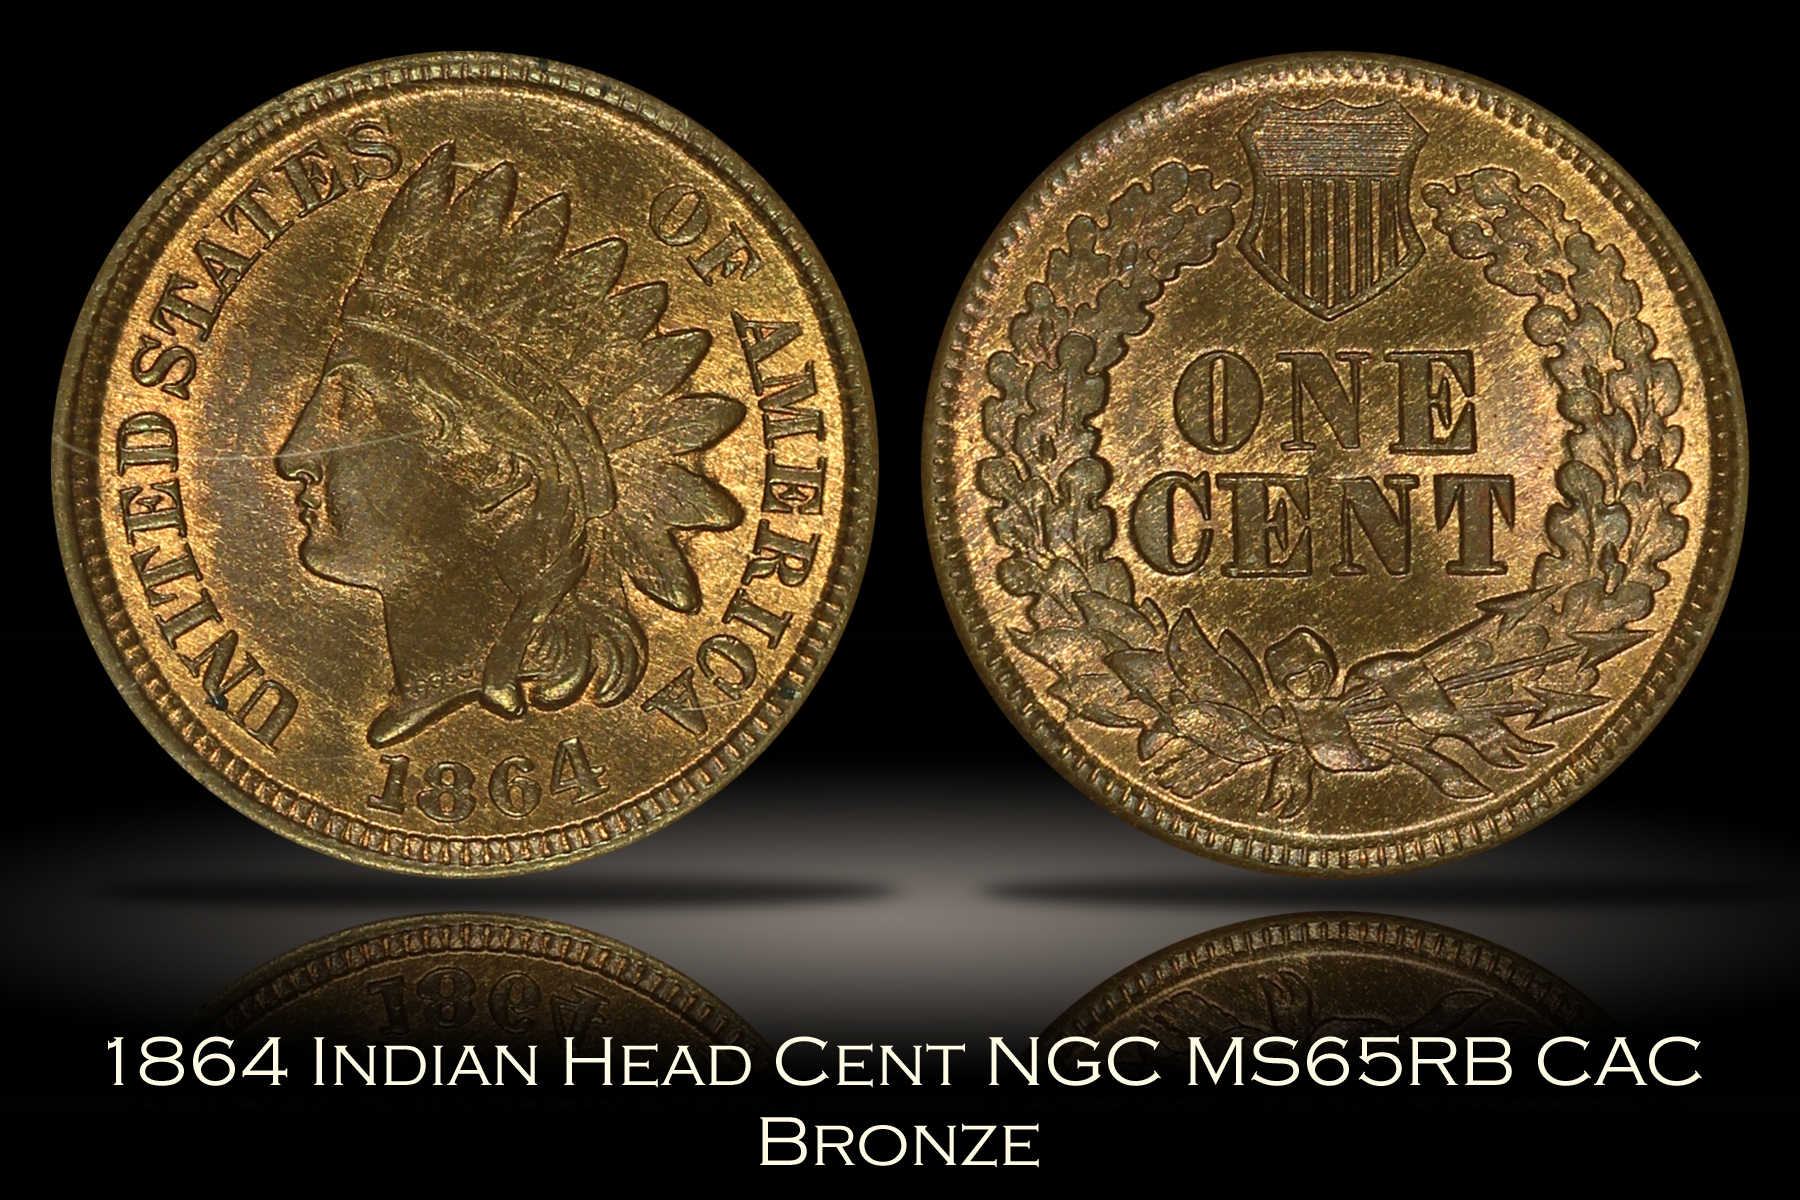 1864 Bronze Indian Head Cent NGC MS65RB CAC